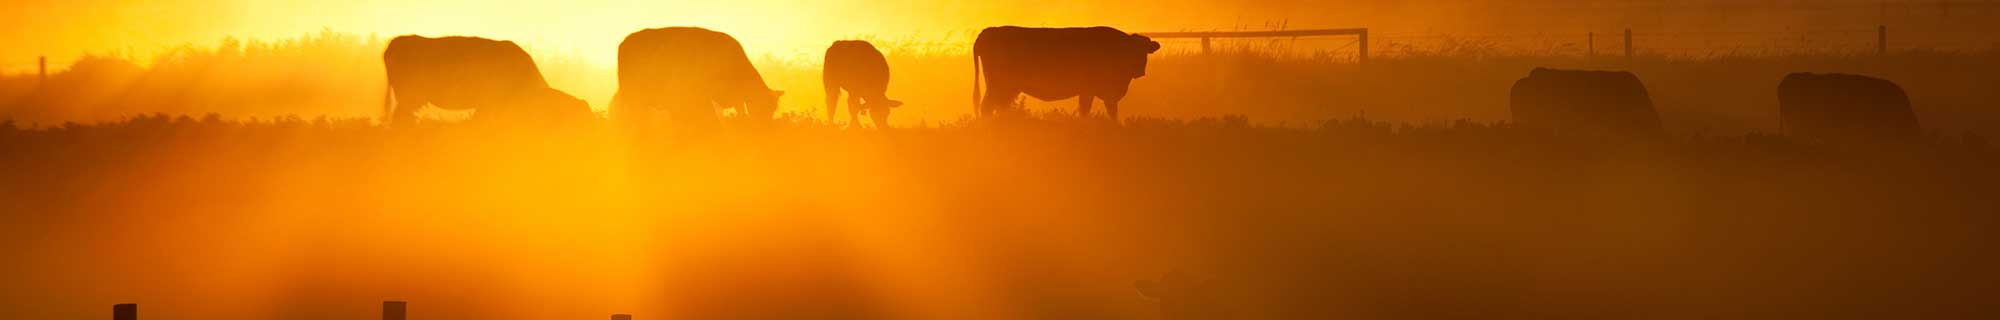 cows at sun rise orange